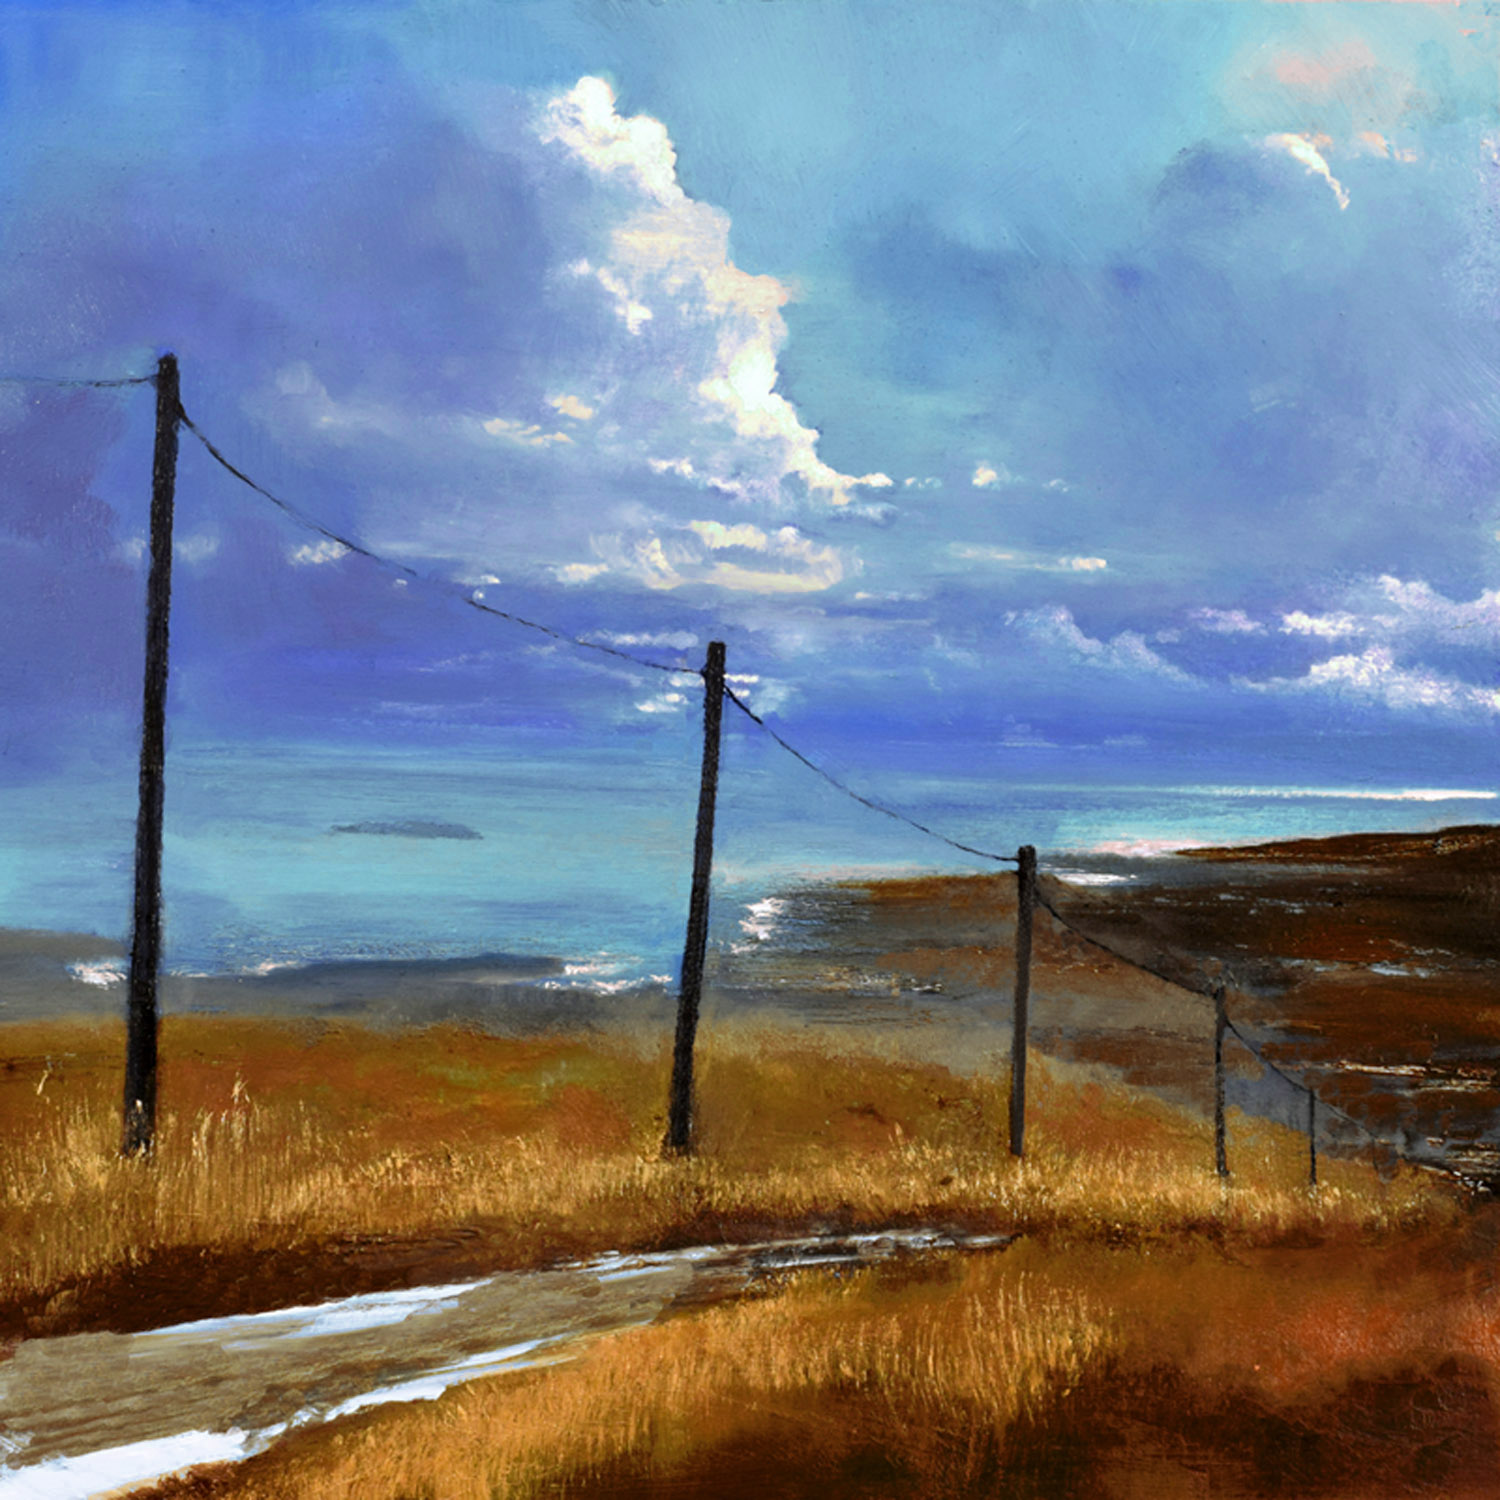 The Road to the Sea III, John O'Grady | A scenic coastal road on a rain-soaked day in the West of Ireland